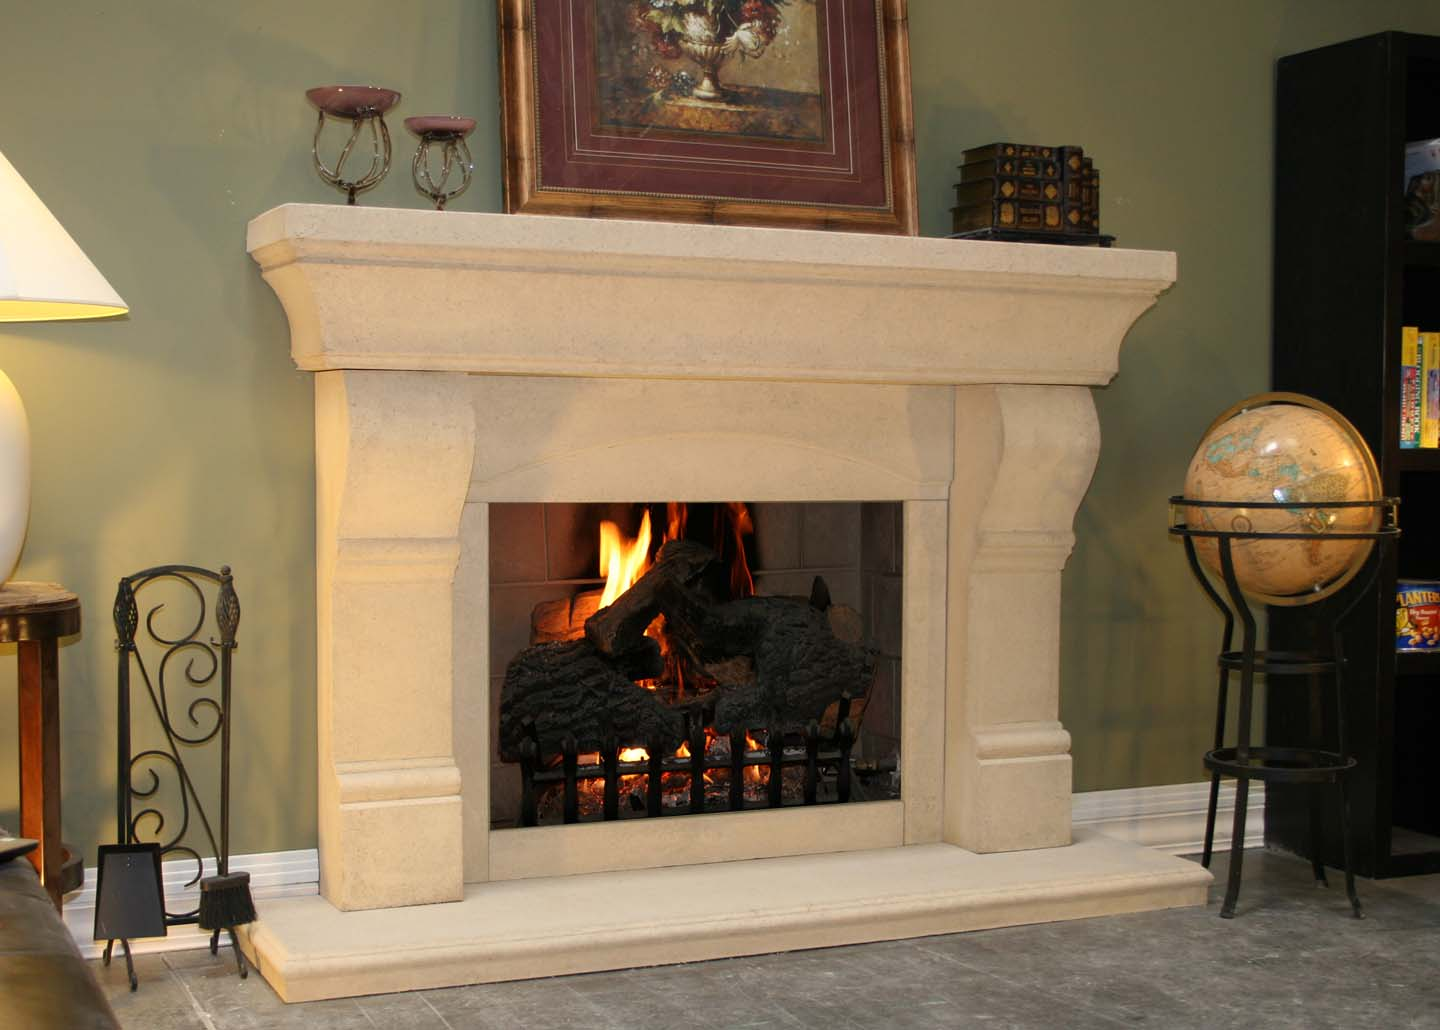 Mt214 Fireplace Mantels Fireplace Surrounds Iron Fireplace Doors And Screens In San Diego